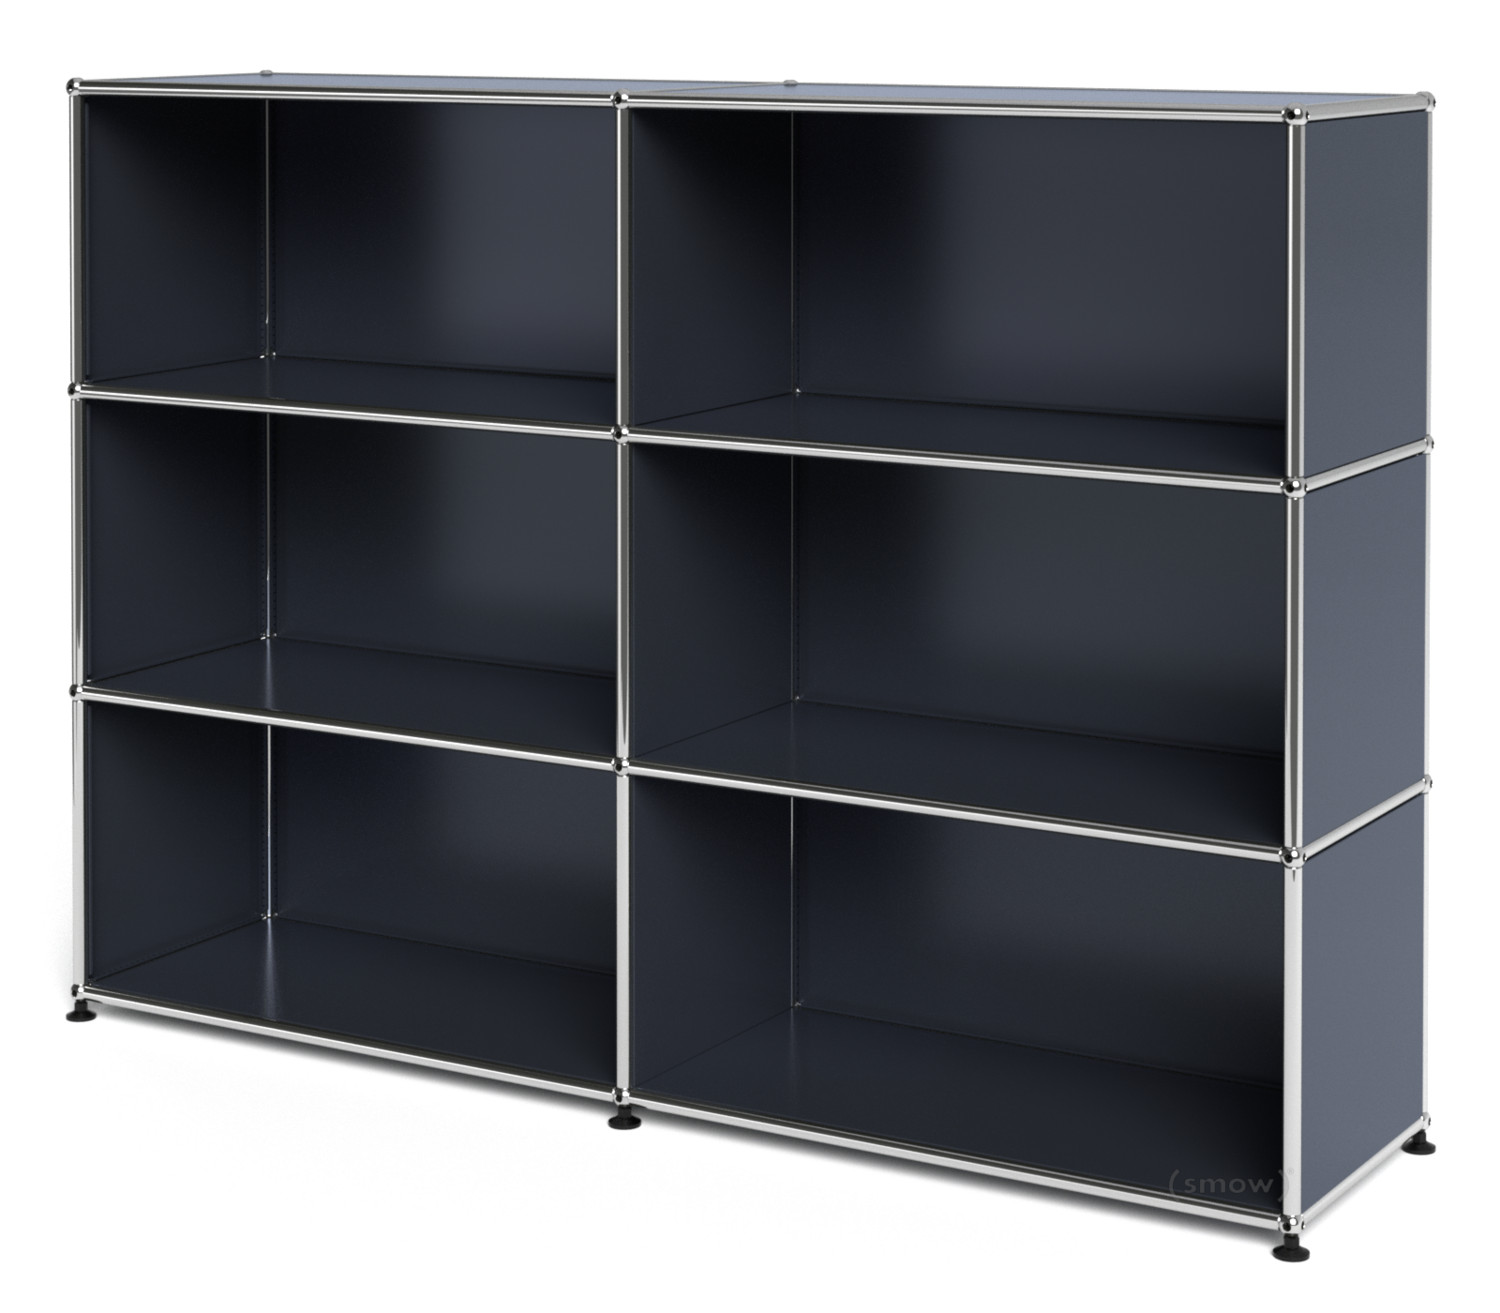 usm haller highboard l offen anthrazitgrau ral 7016 von fritz haller paul sch rer. Black Bedroom Furniture Sets. Home Design Ideas